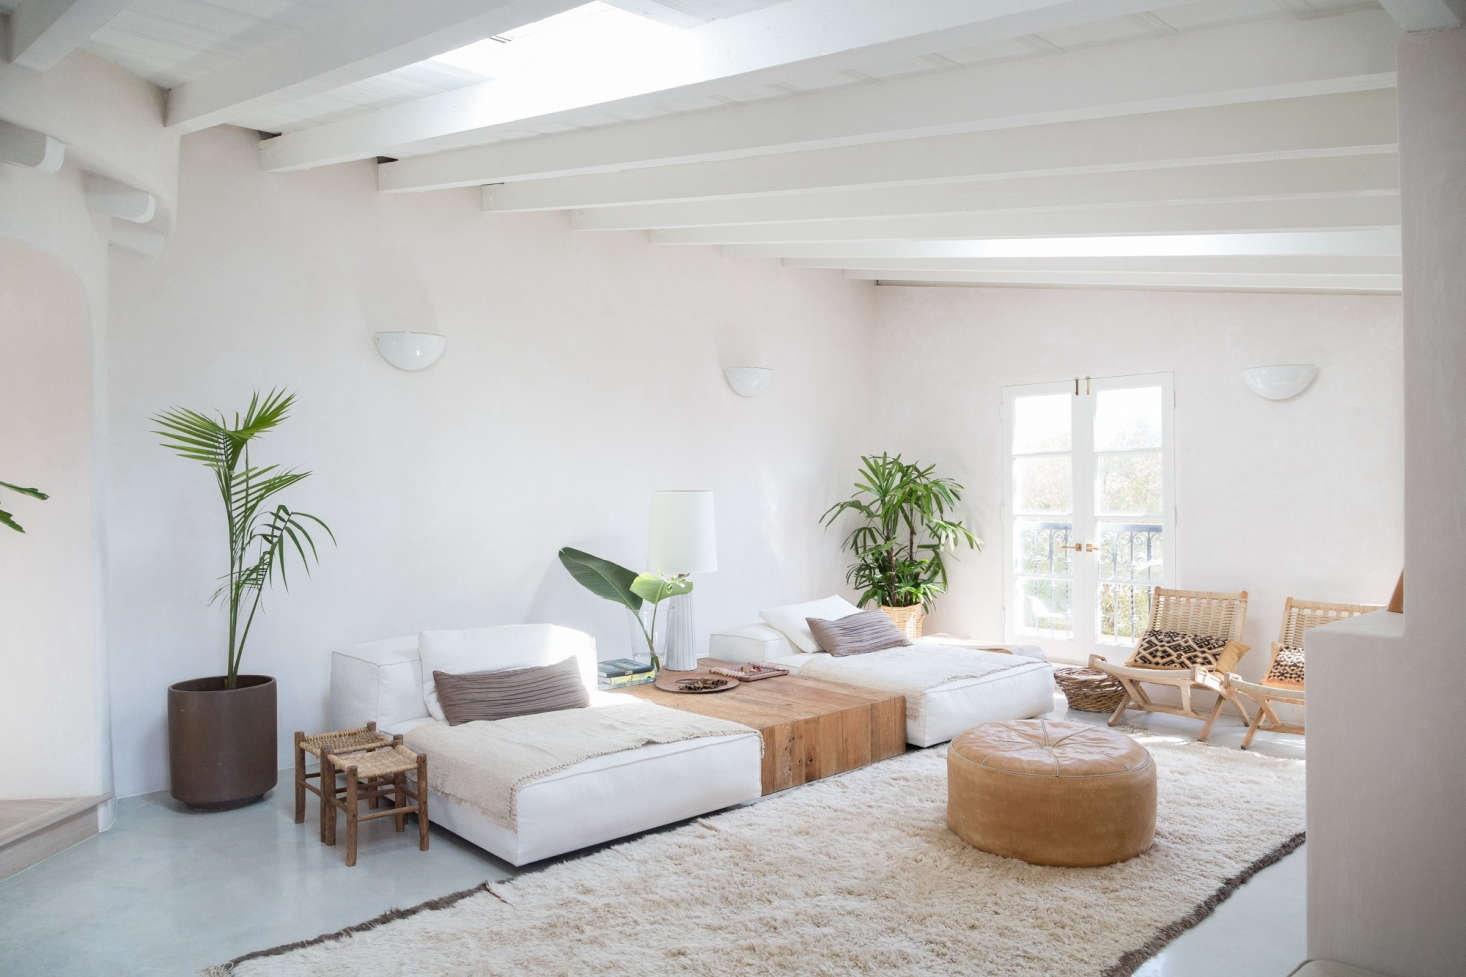 An airy living room channels laid-back LA livingwith low-slungwhite chaises (Living Divani modular sofas) and a custom white oak table. Golubovic found the midcentury woven chairs at a flea market in Chicago.